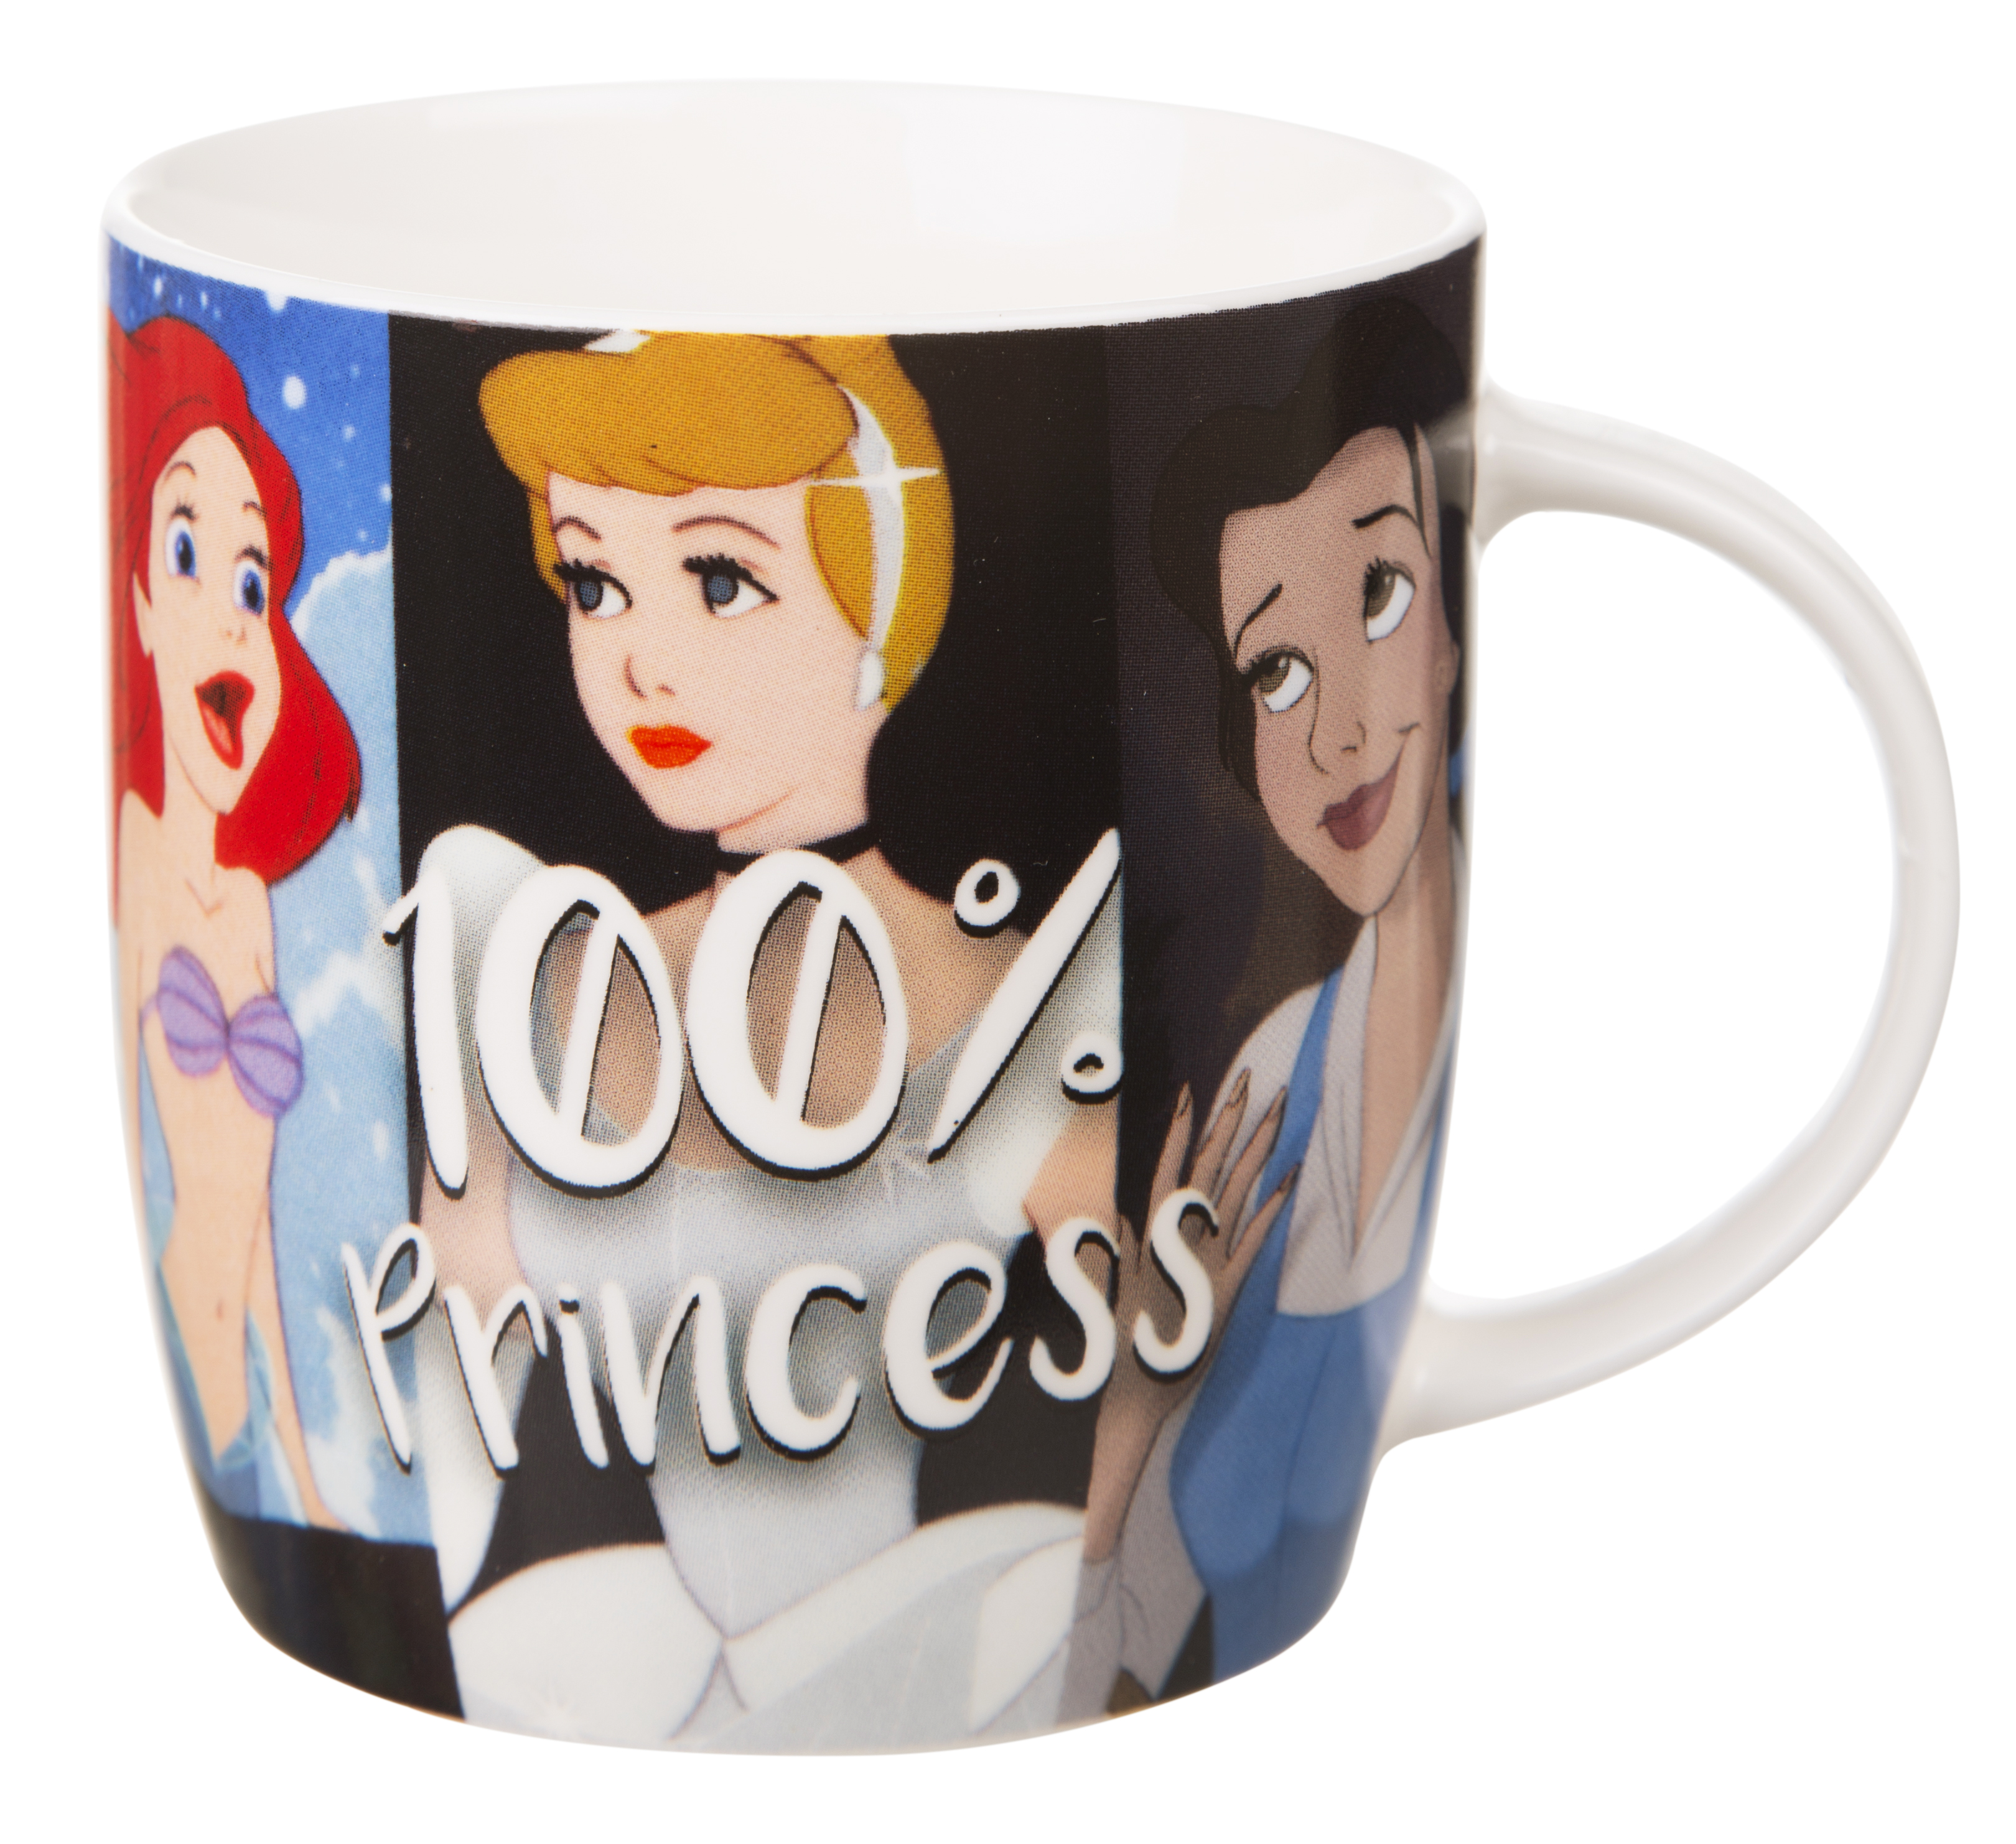 Featuring The Disney Princesses Alongside The Slogan 100% Princess, This Mug  Will Leave No One In Any Doubt To Your True Calling In Life!